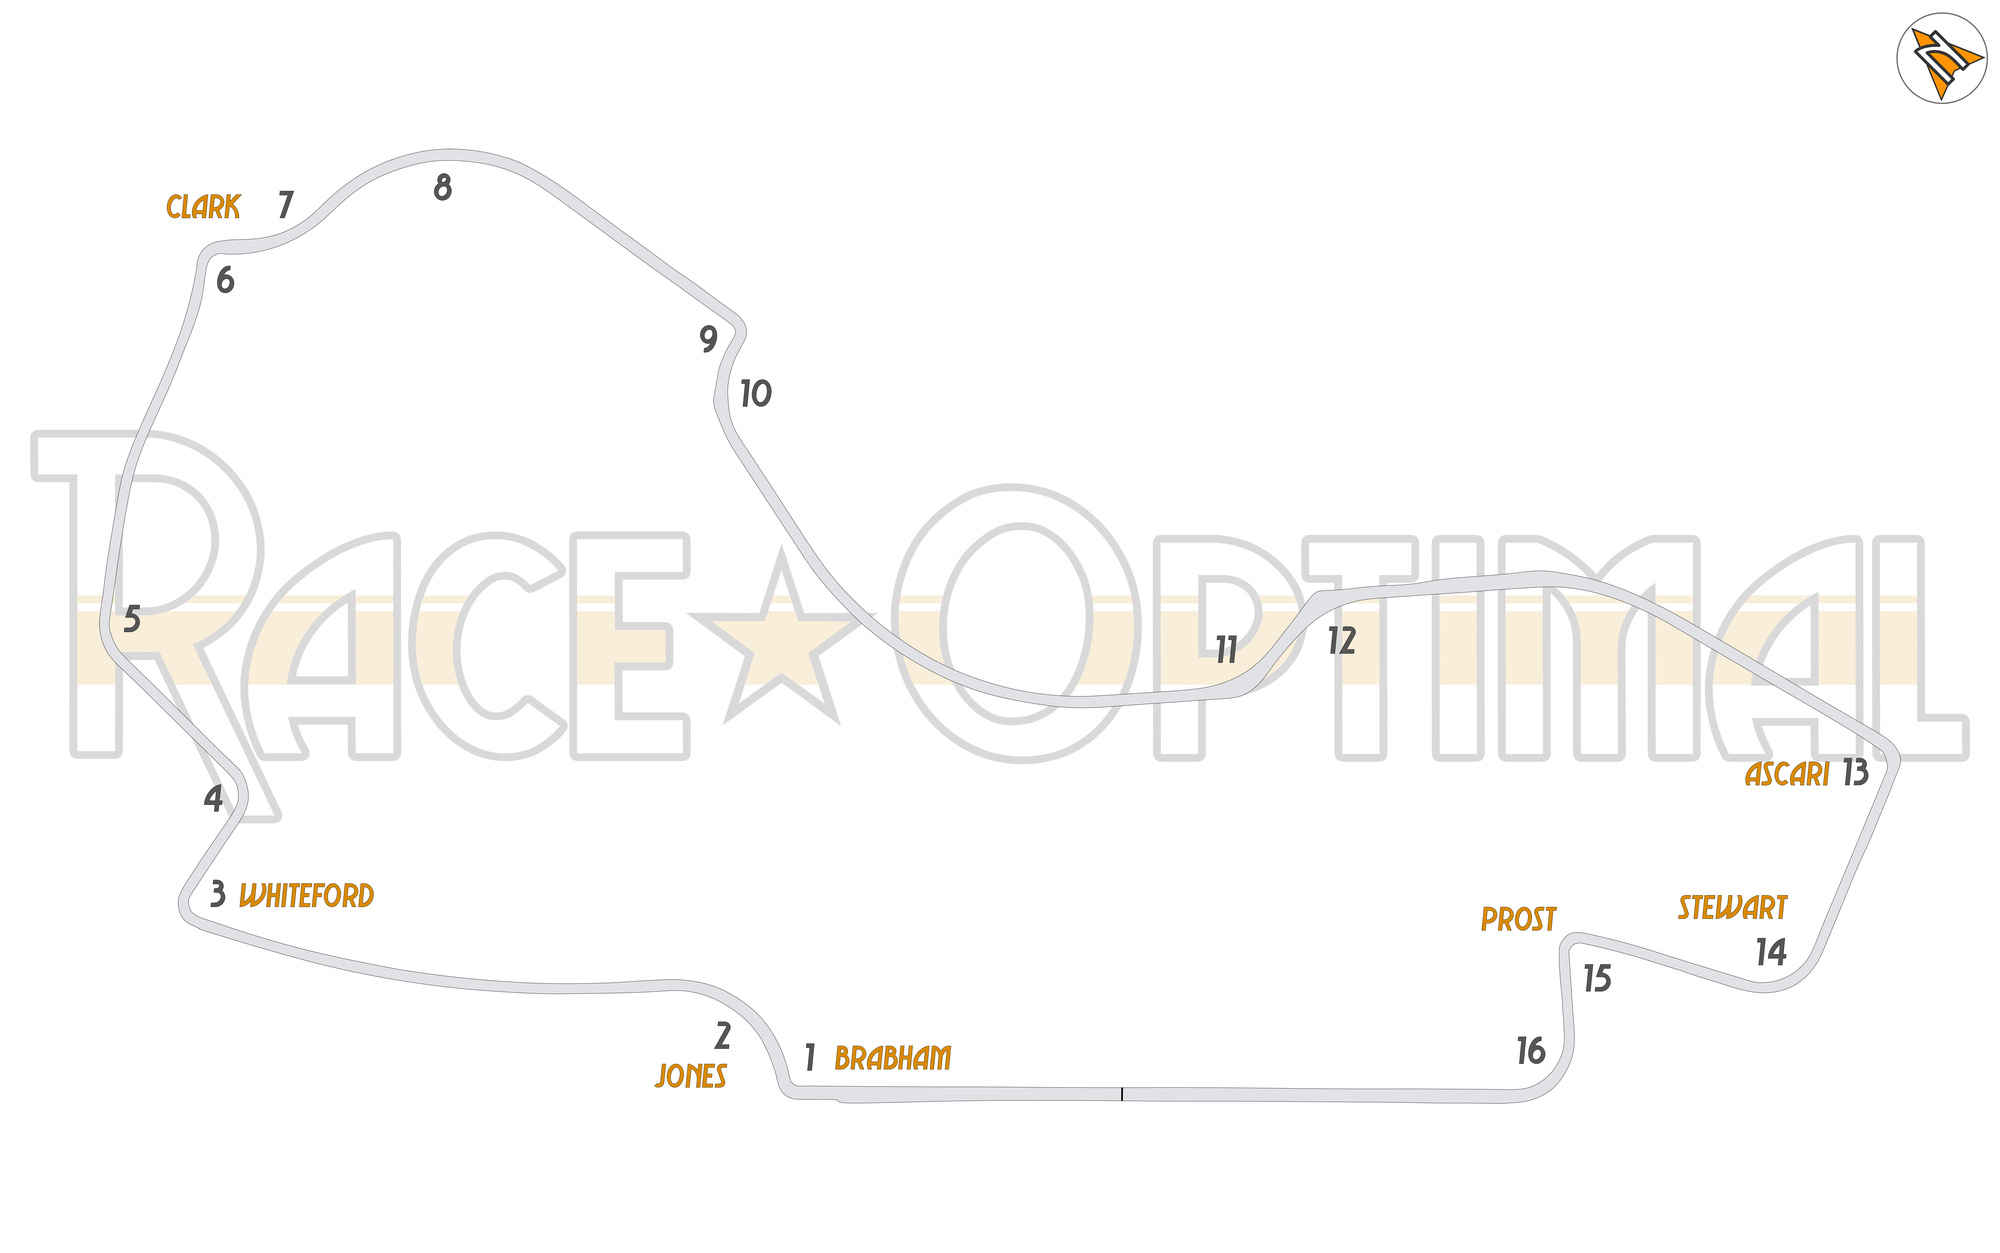 Racing Line Map at Melbourne Grand Prix Circuit (Albert Park)